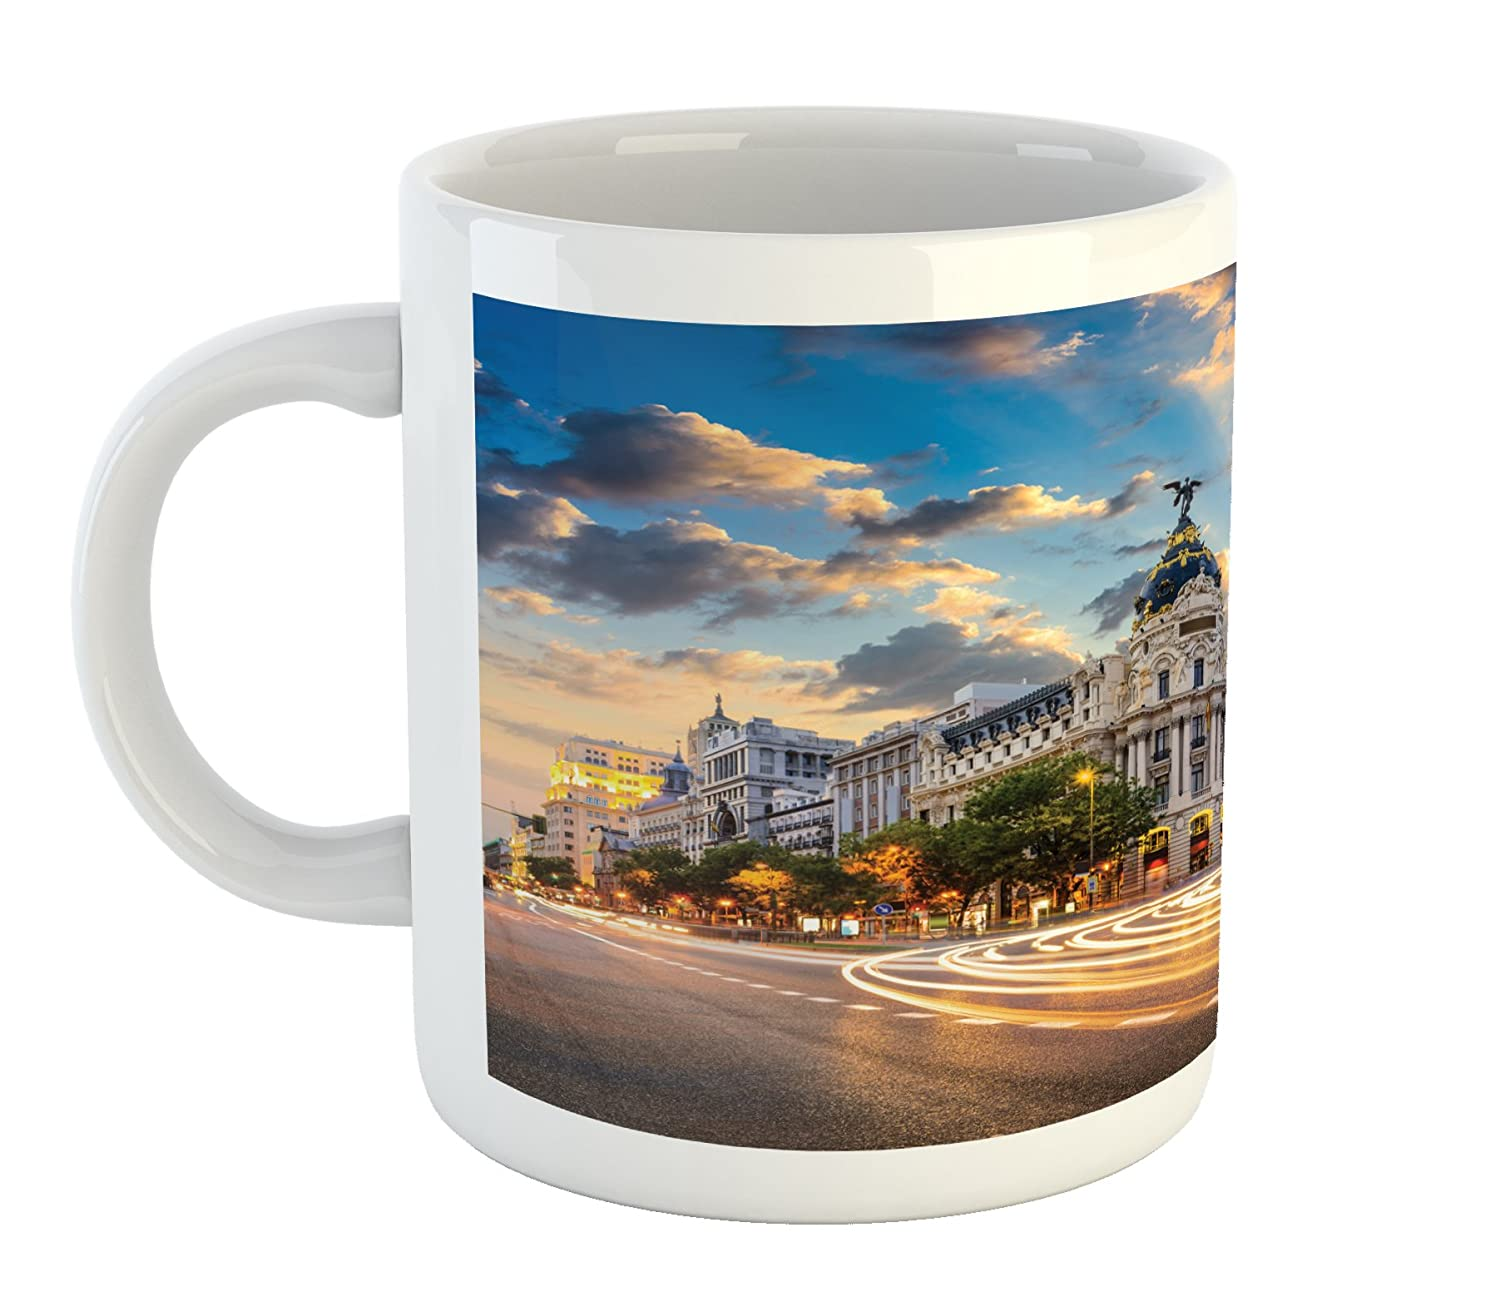 Printed Ceramic Coffee Mug Water Tea Drinks Cup View of The Streets Modern Madrid with Sky Landscape Big Old Ancient Town Heritage Lunarable European Mug Multicolor